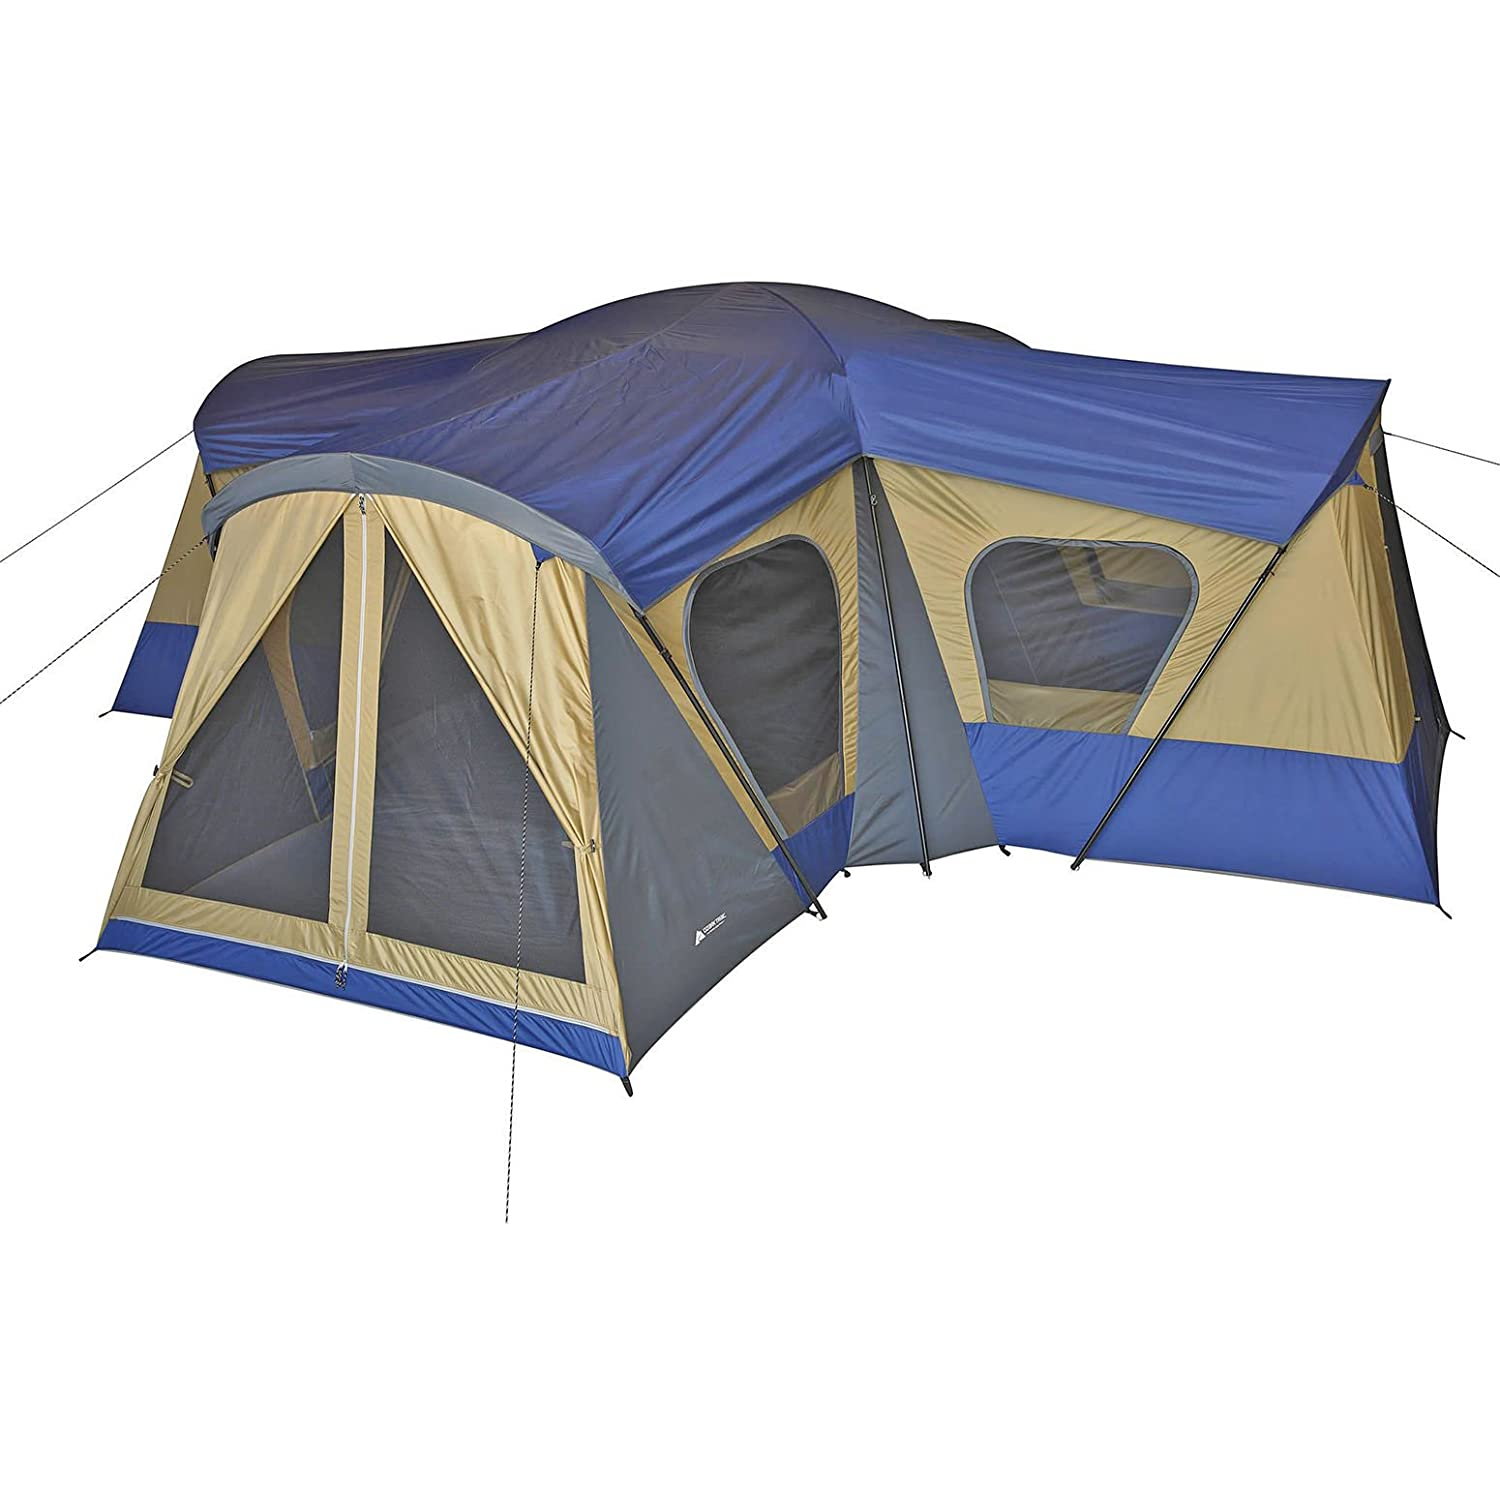 Amazon.com  Ozark Trail Base C& 14-Person Cabin Tent (Blue)  Sports u0026 Outdoors  sc 1 st  Amazon.com : ozark trail tents 10 person - memphite.com